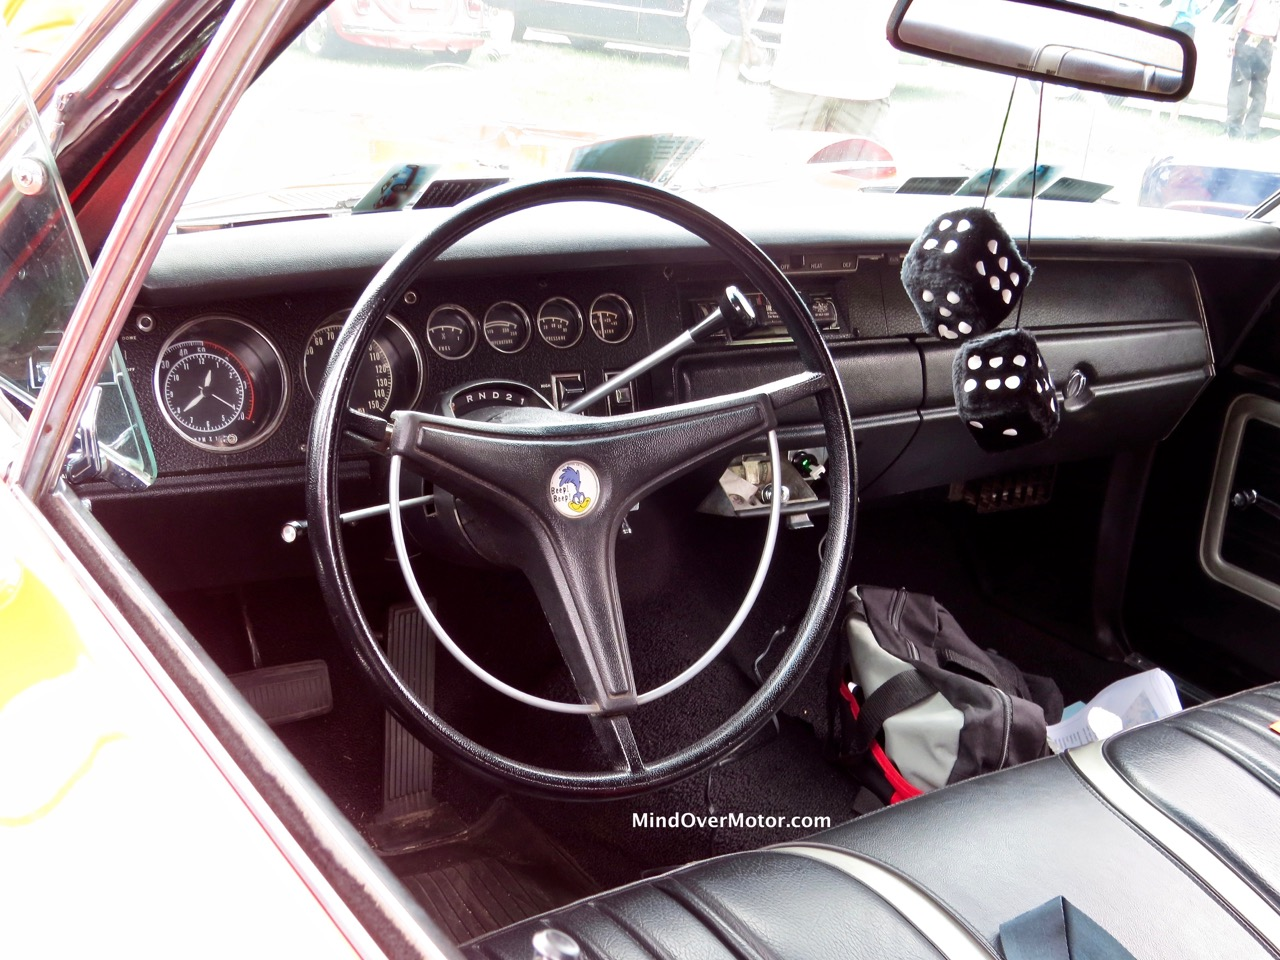 1970 Torred Superbird interior